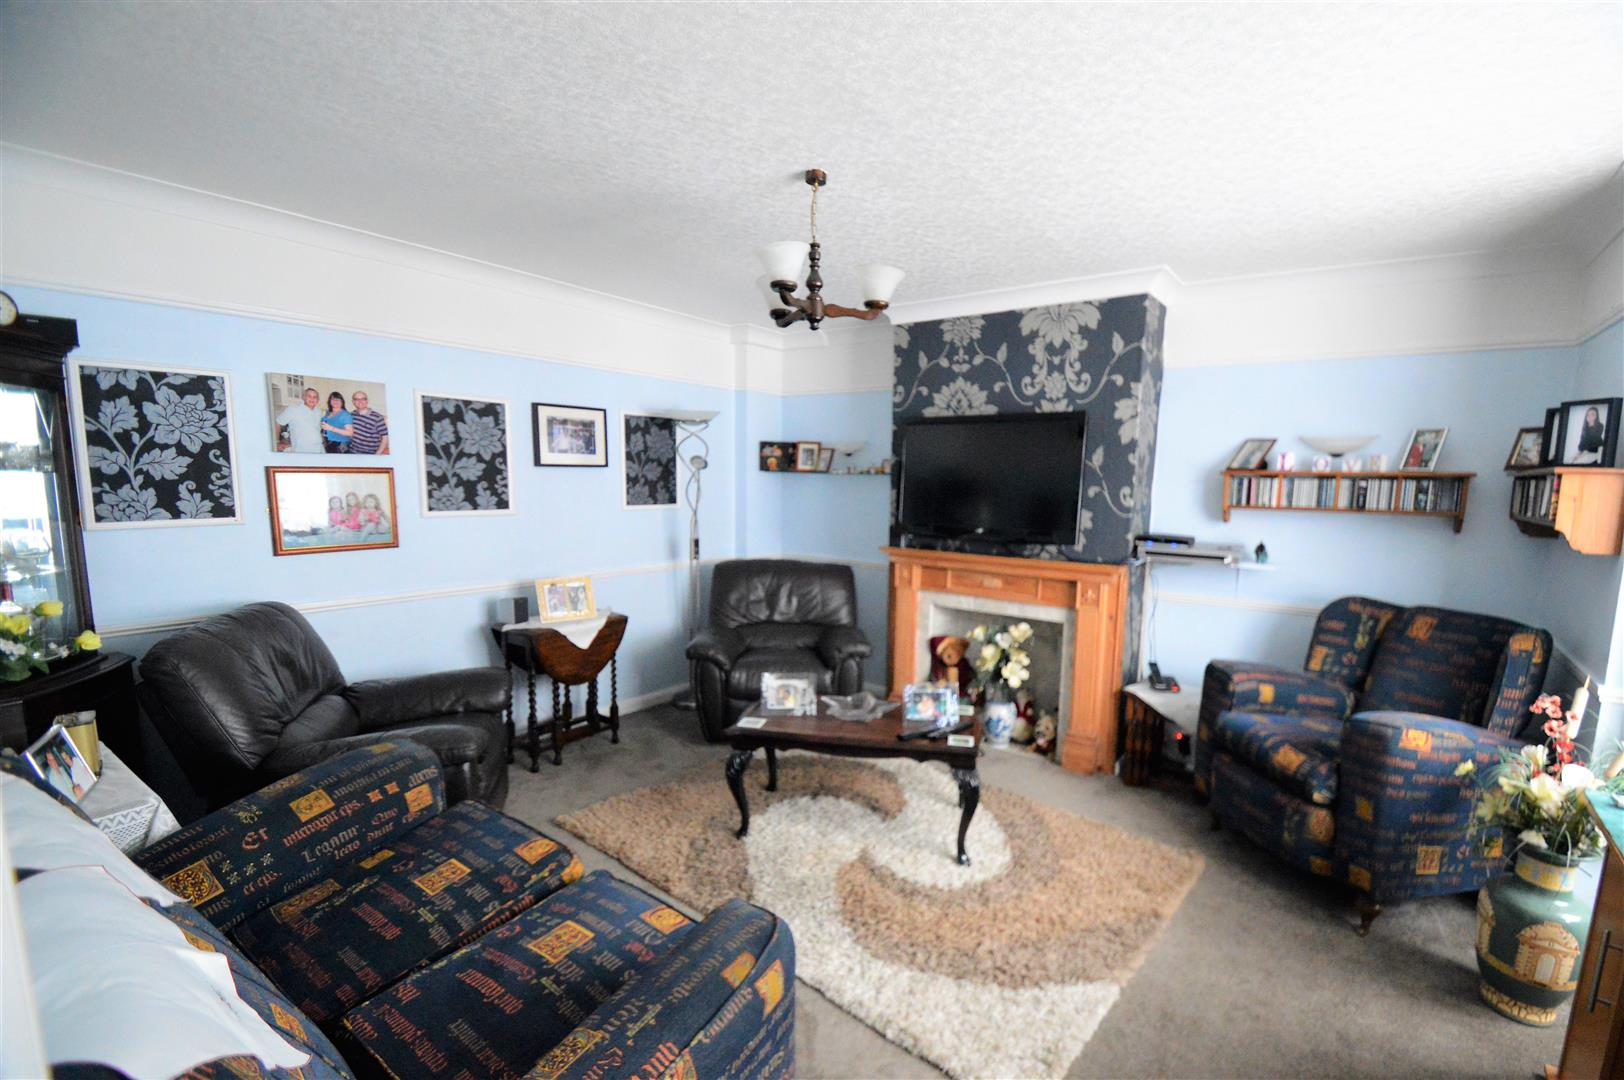 3 Bedroom House For Sale In London